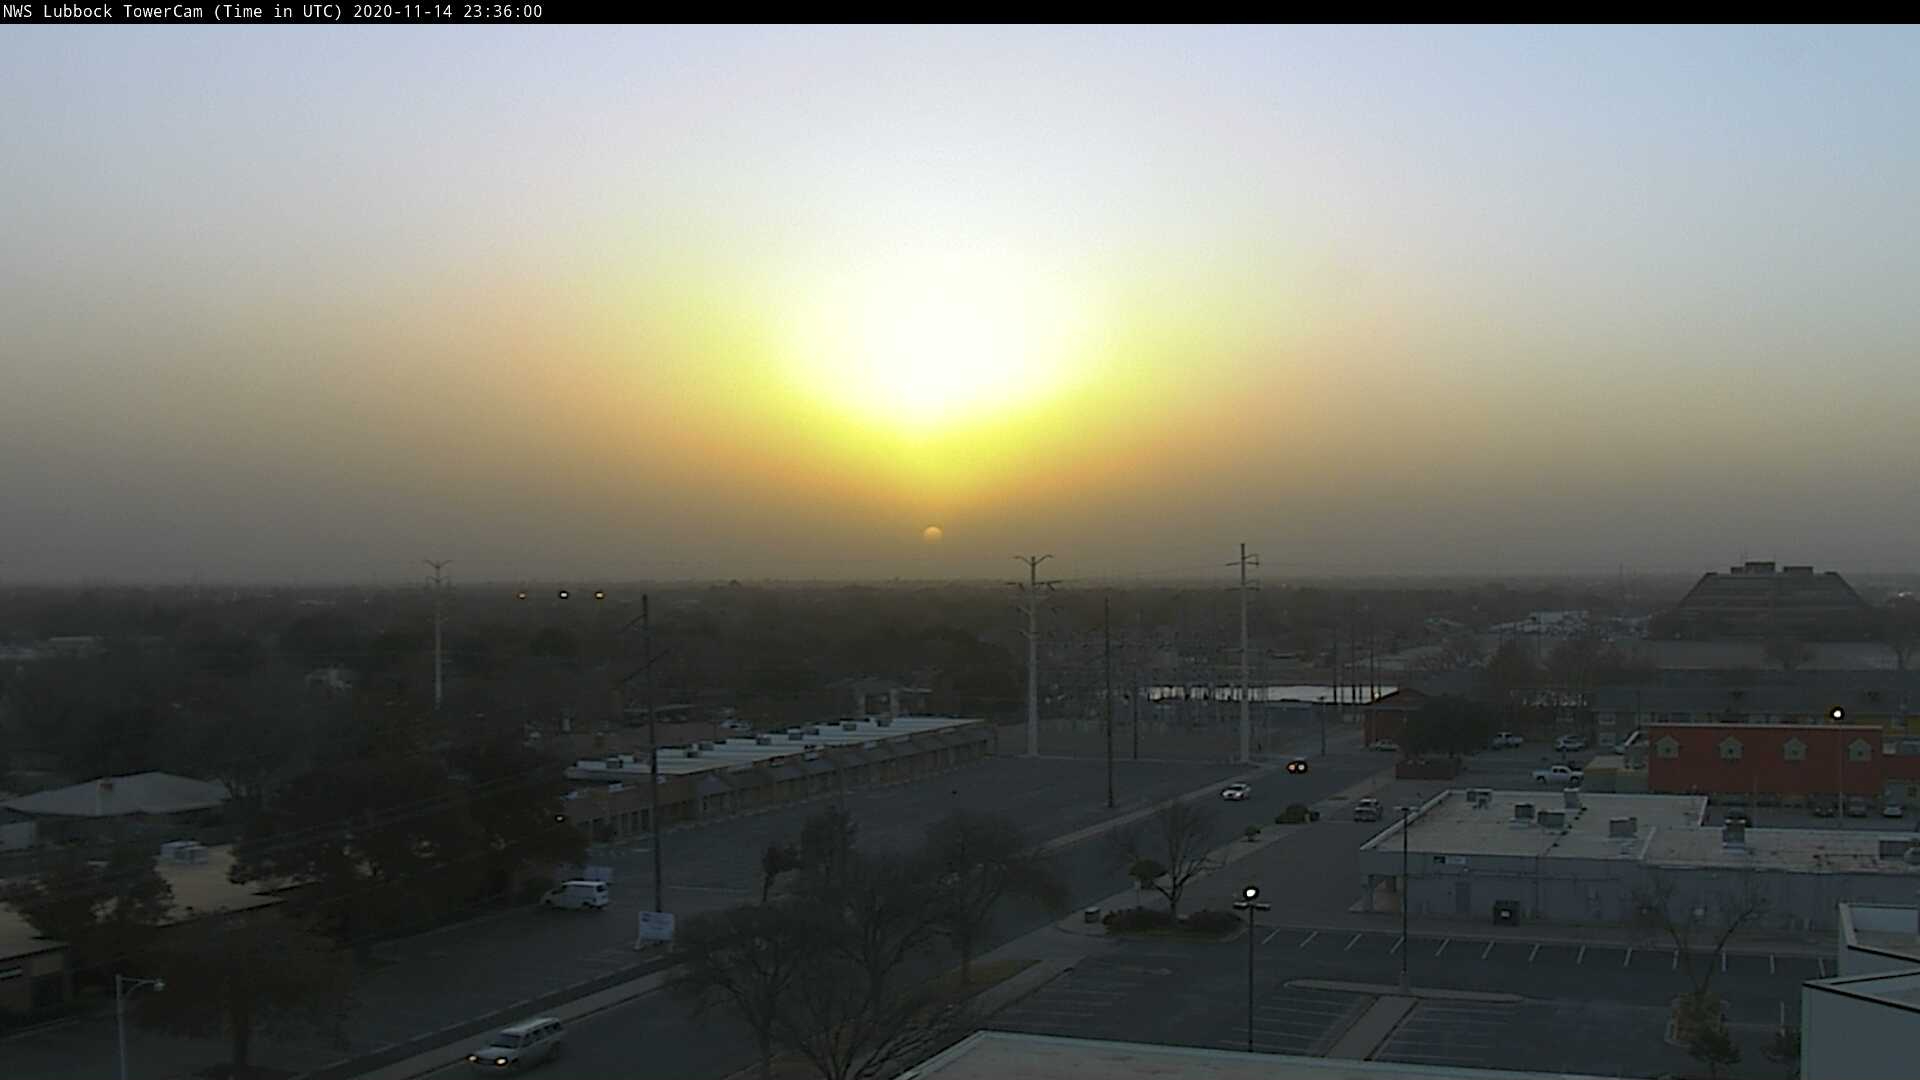 Colorful, dusty sunset Saturday evening (14 November 2020).